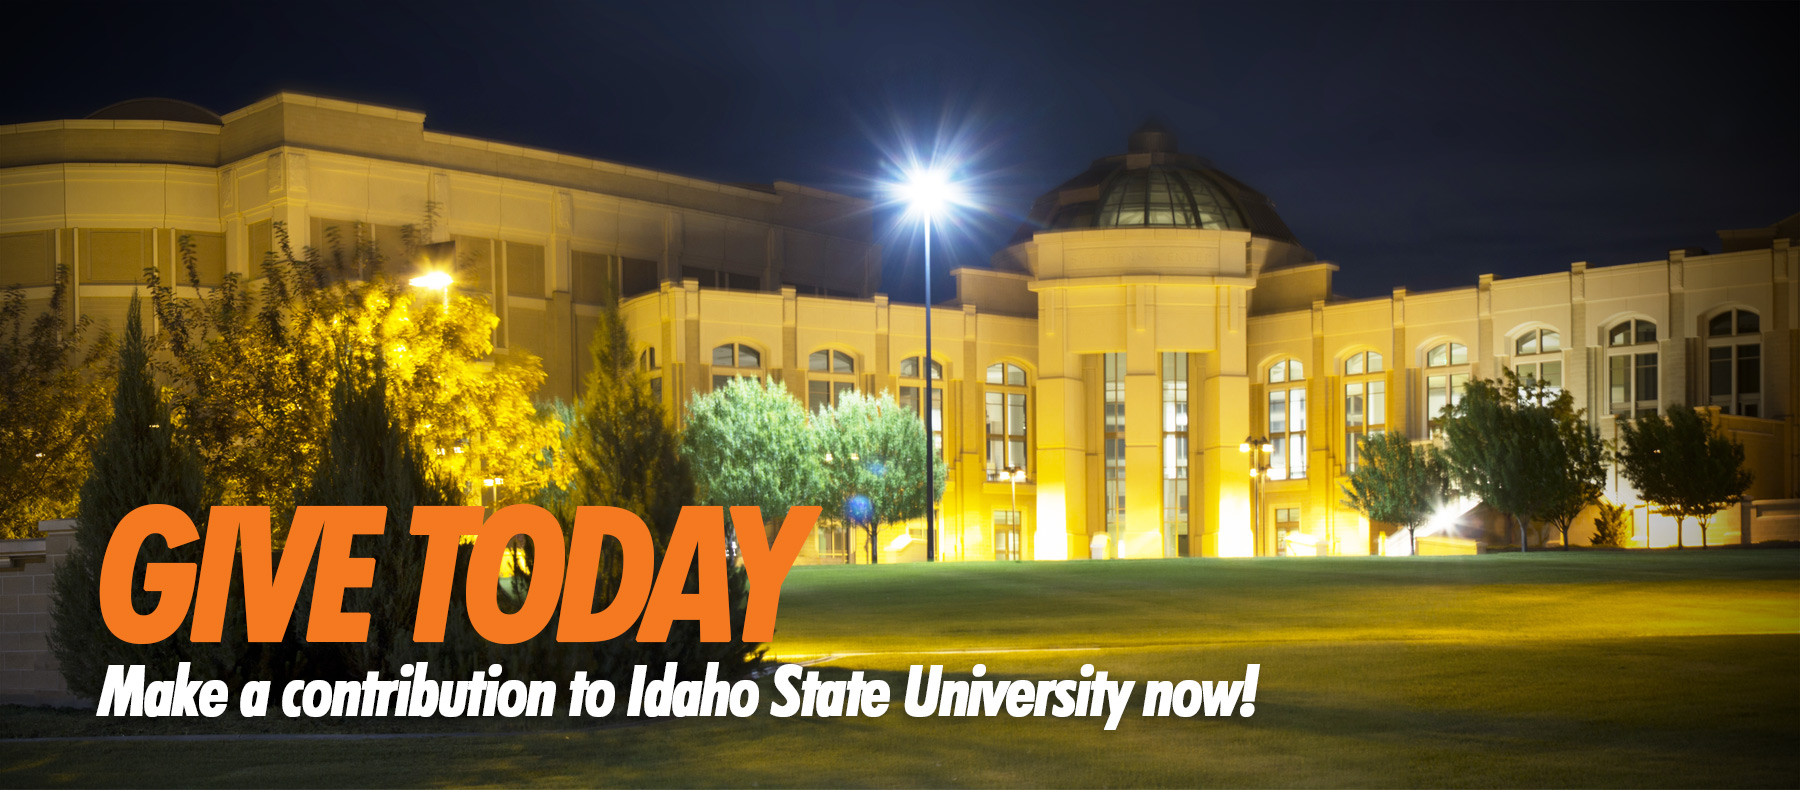 Give Today - Make a contribution to Idaho State University now.